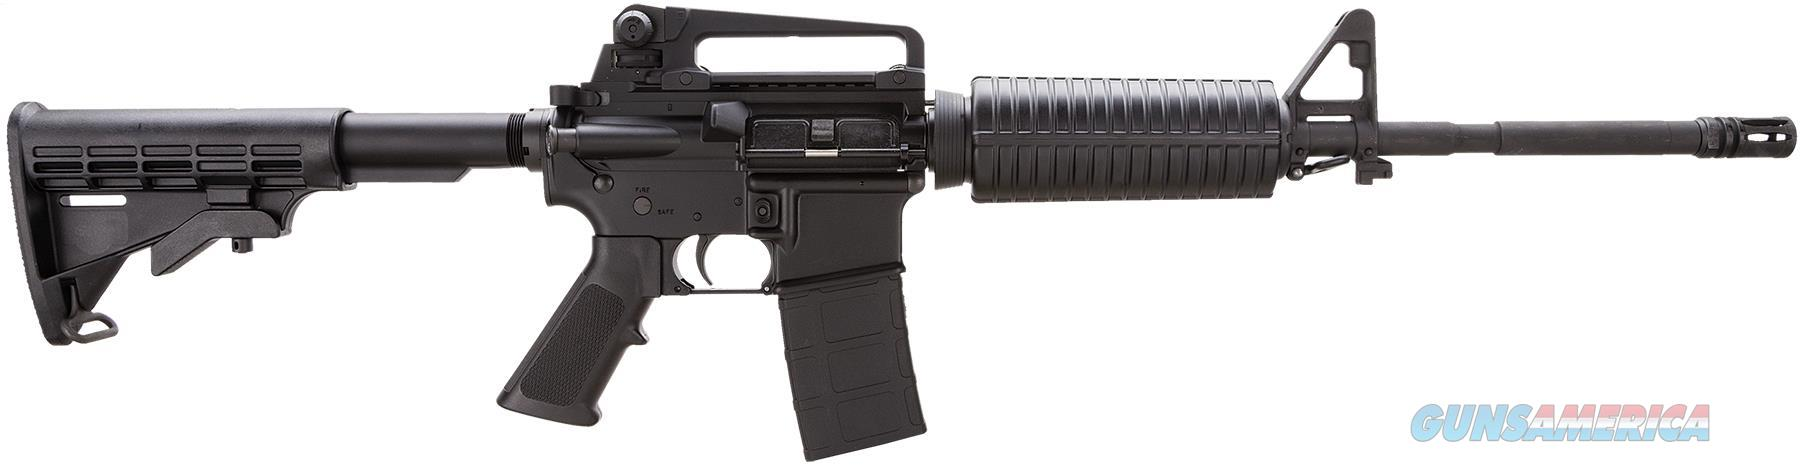 "DPMSPANTHER ARMS PNTHR AP4 CARB 223 16"" 60505  Guns > Rifles > DPMS - Panther Arms > Complete Rifle"